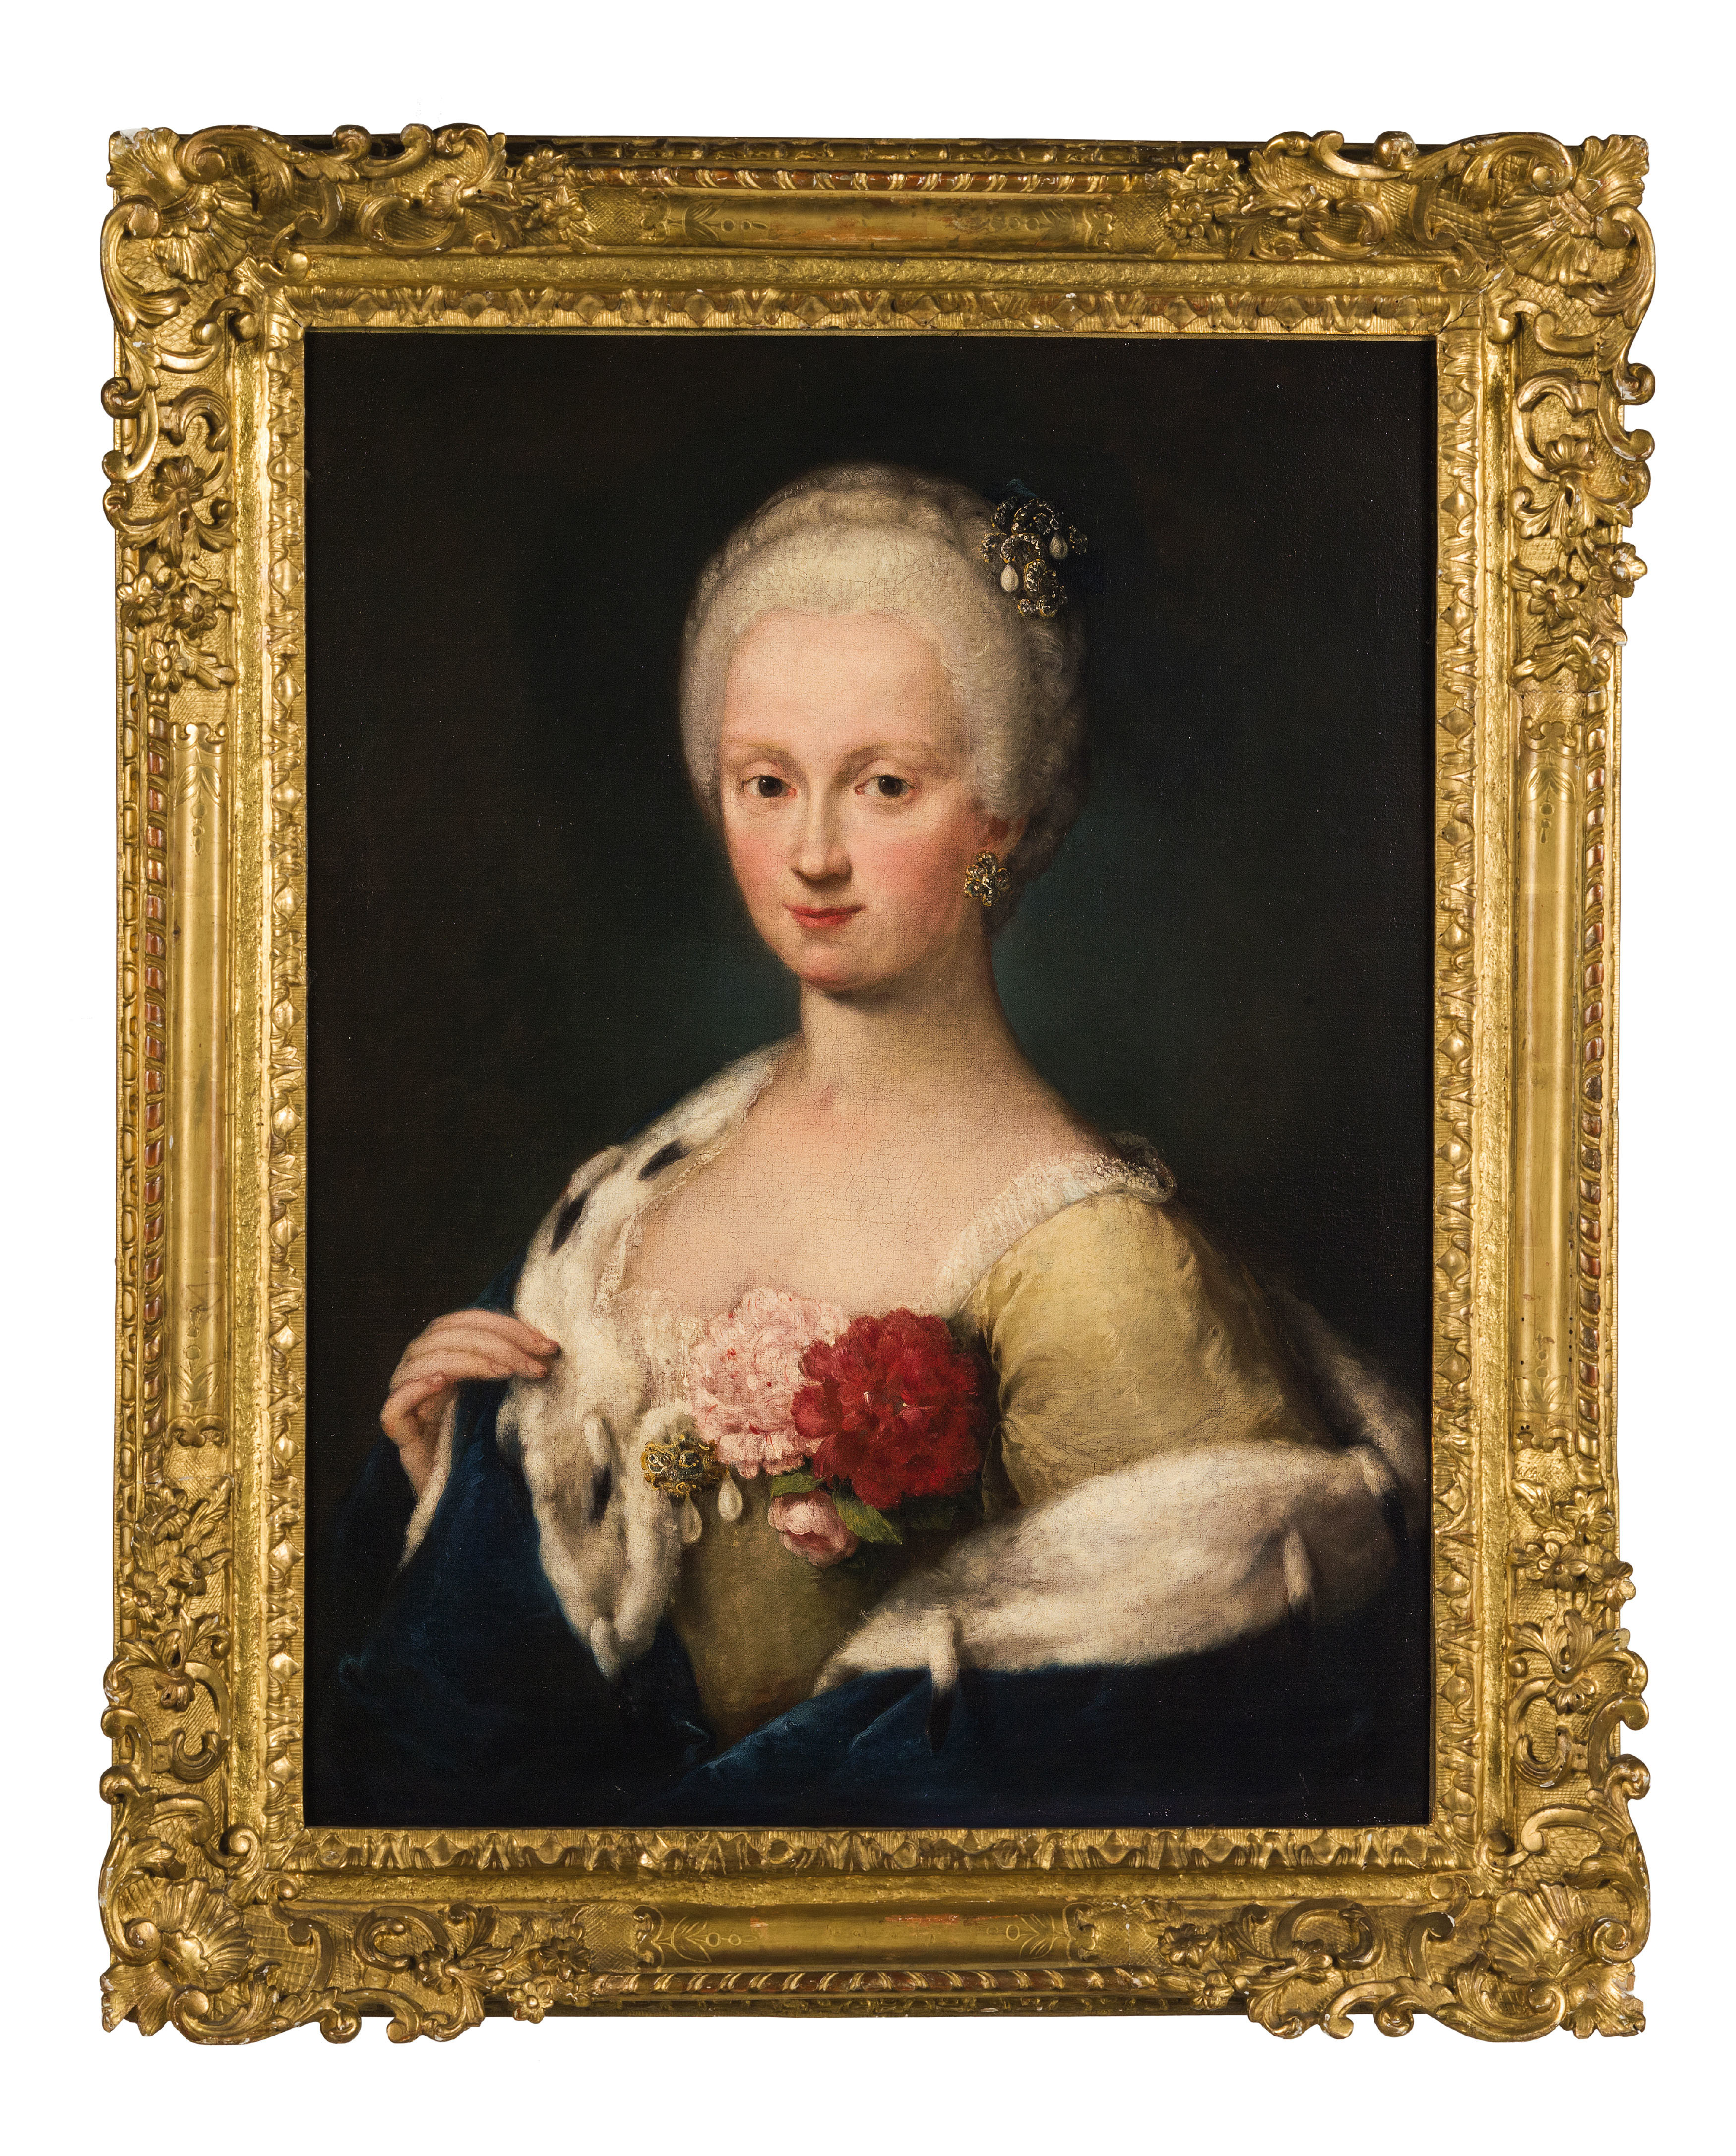 ALESSANDRO LONGHI (1733 Venice 1813) - Portrait of a lady with ermine, oil / canvas